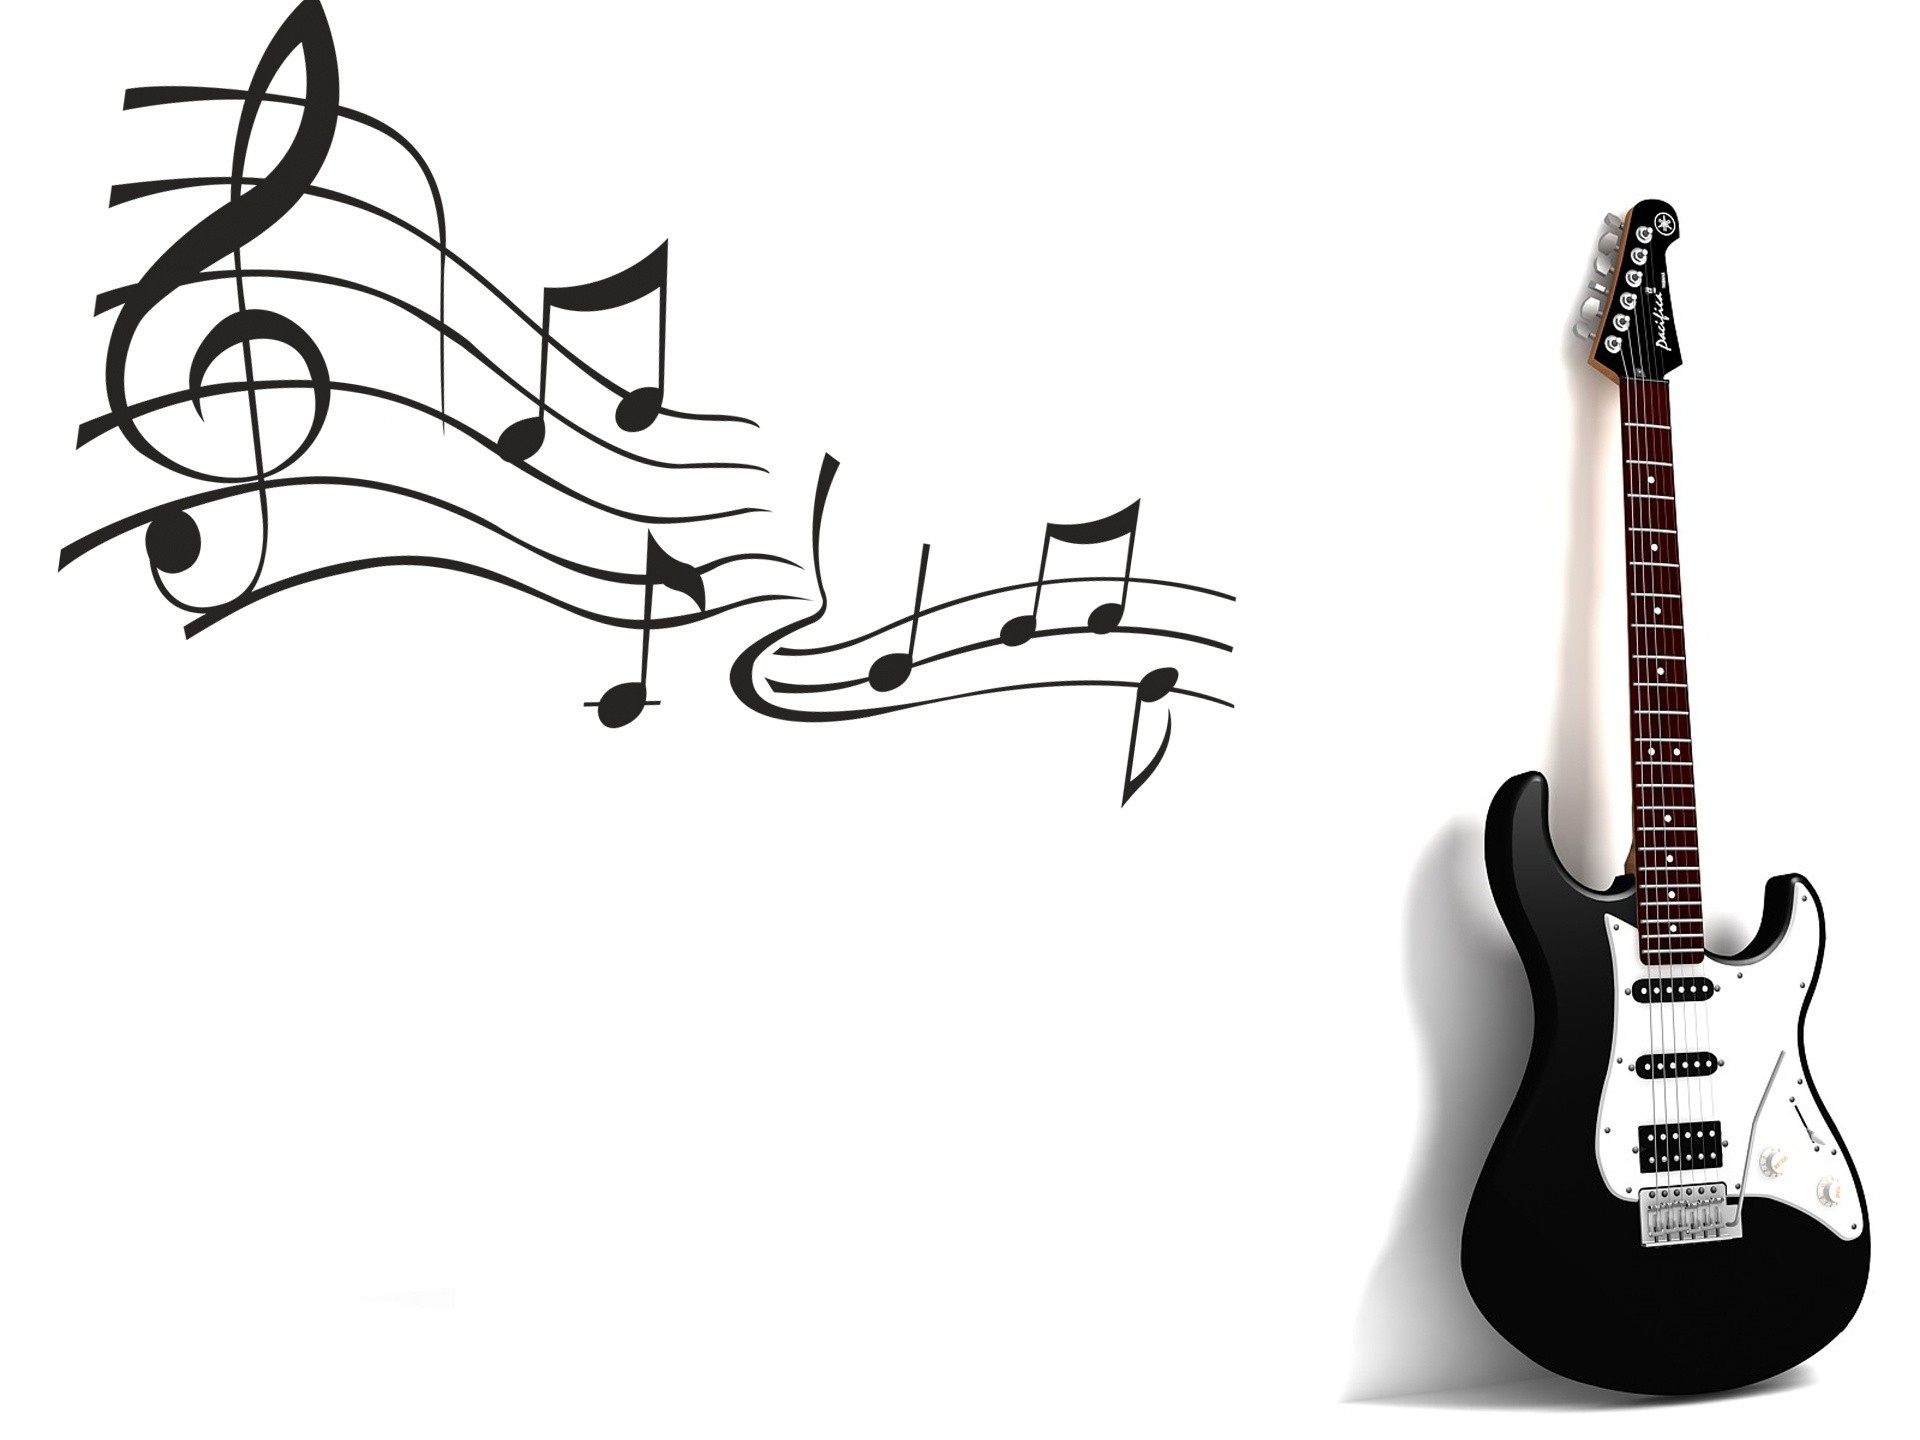 Guitar and music wallpapers | Guitar and music stock photos